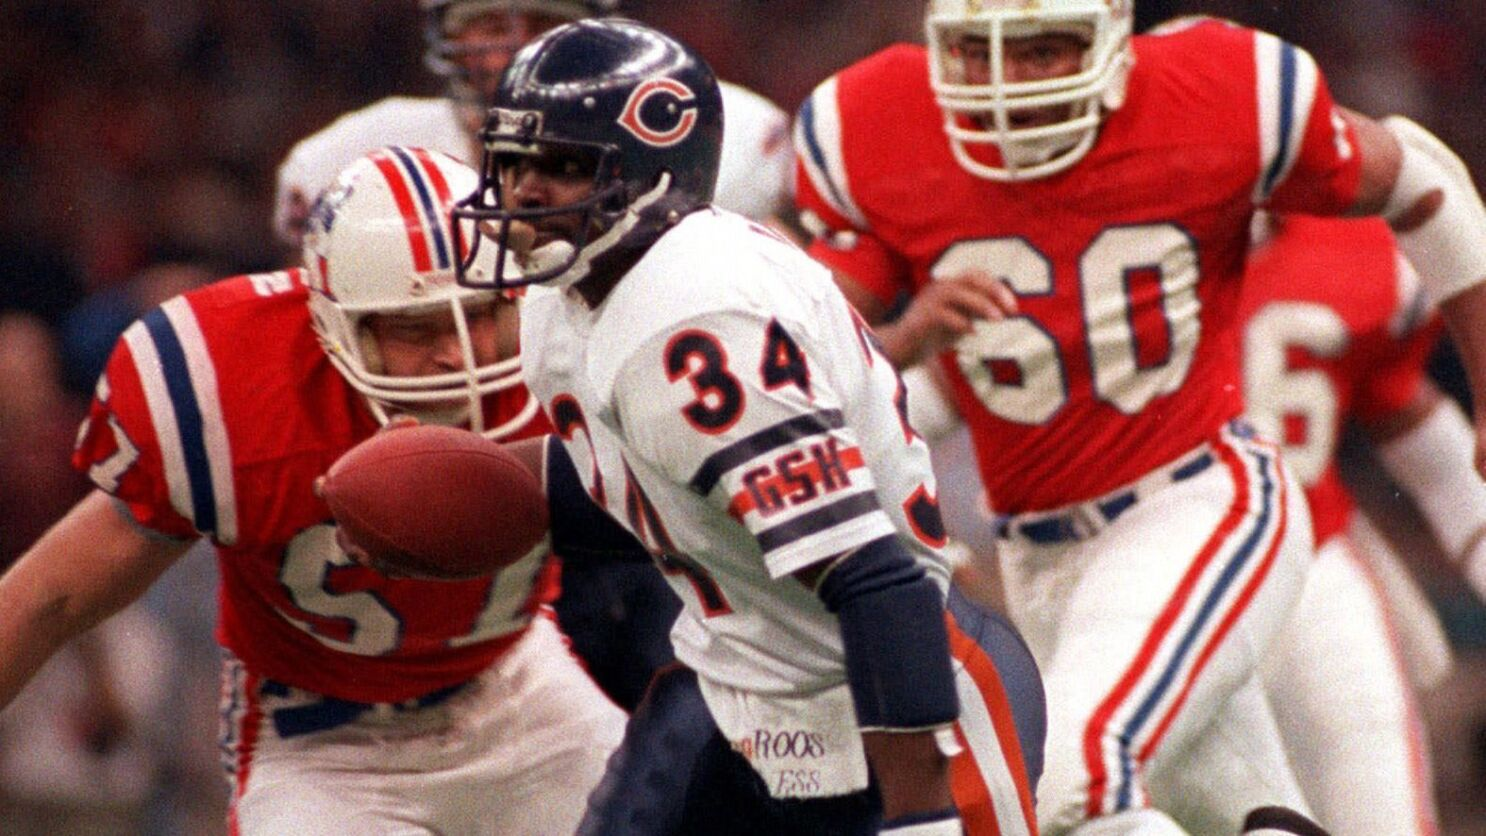 info for 2e91e b760f How Walter Payton's Super Bowl ring ended up in a college ...